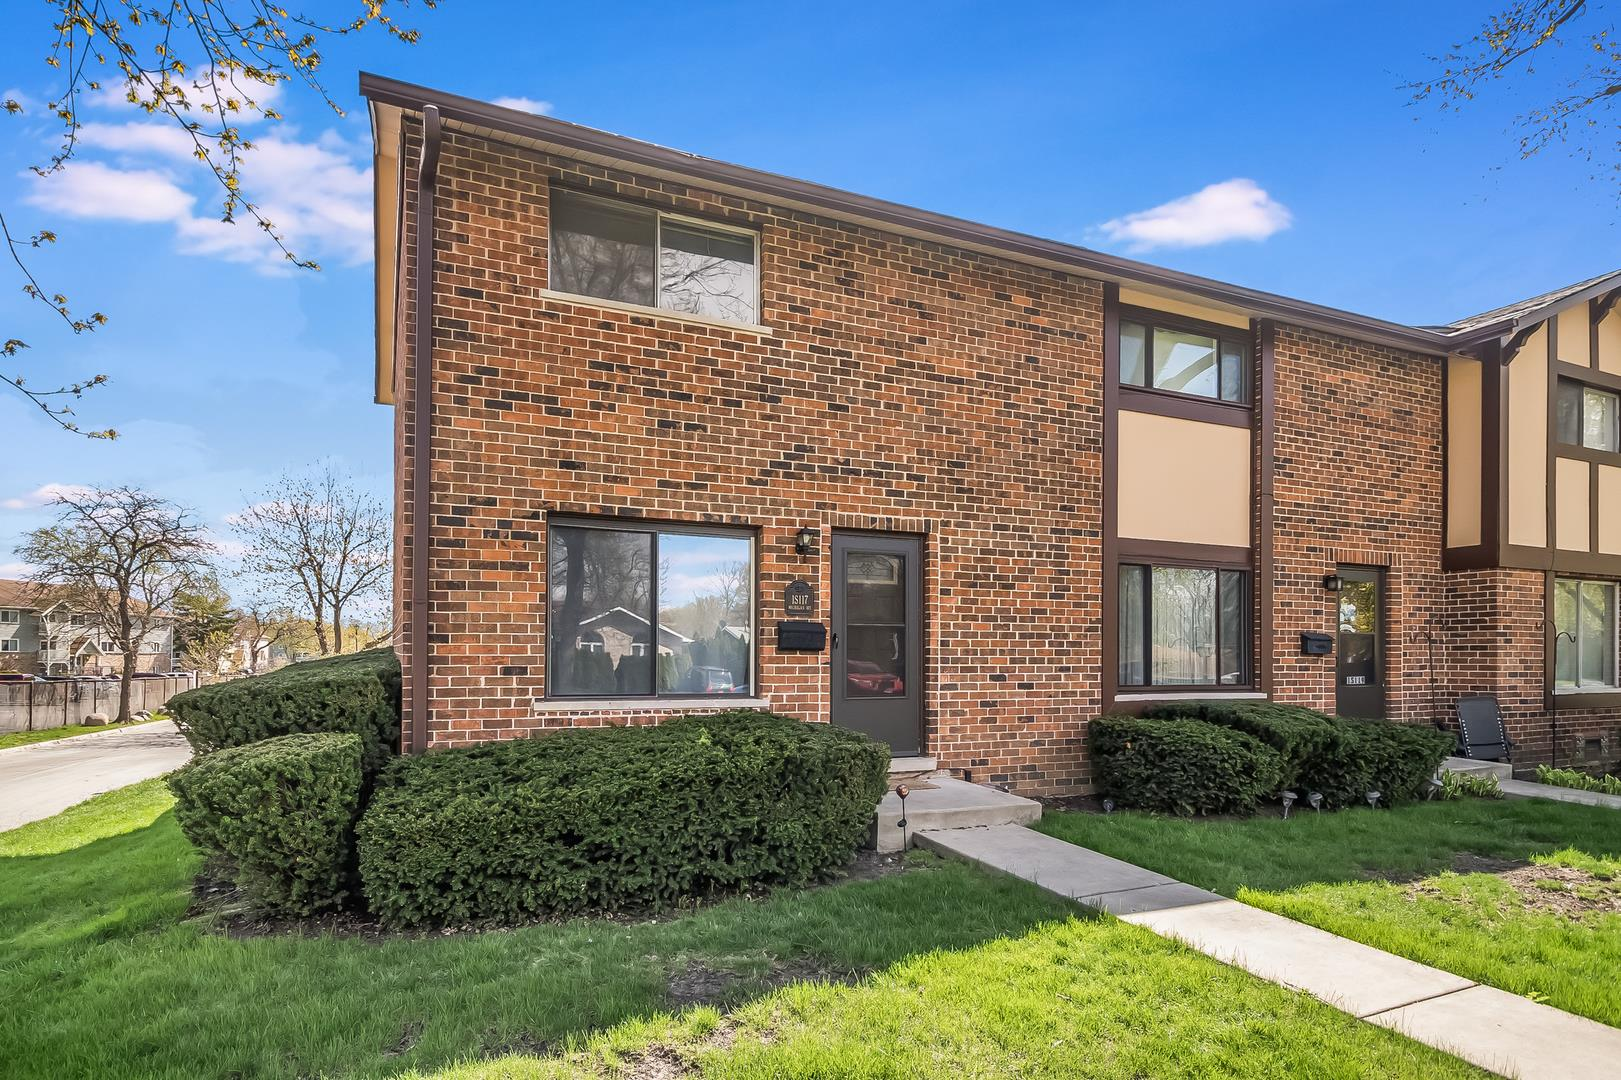 1S117 Michigan Avenue, Villa Park, IL 60181 - #: 11058515